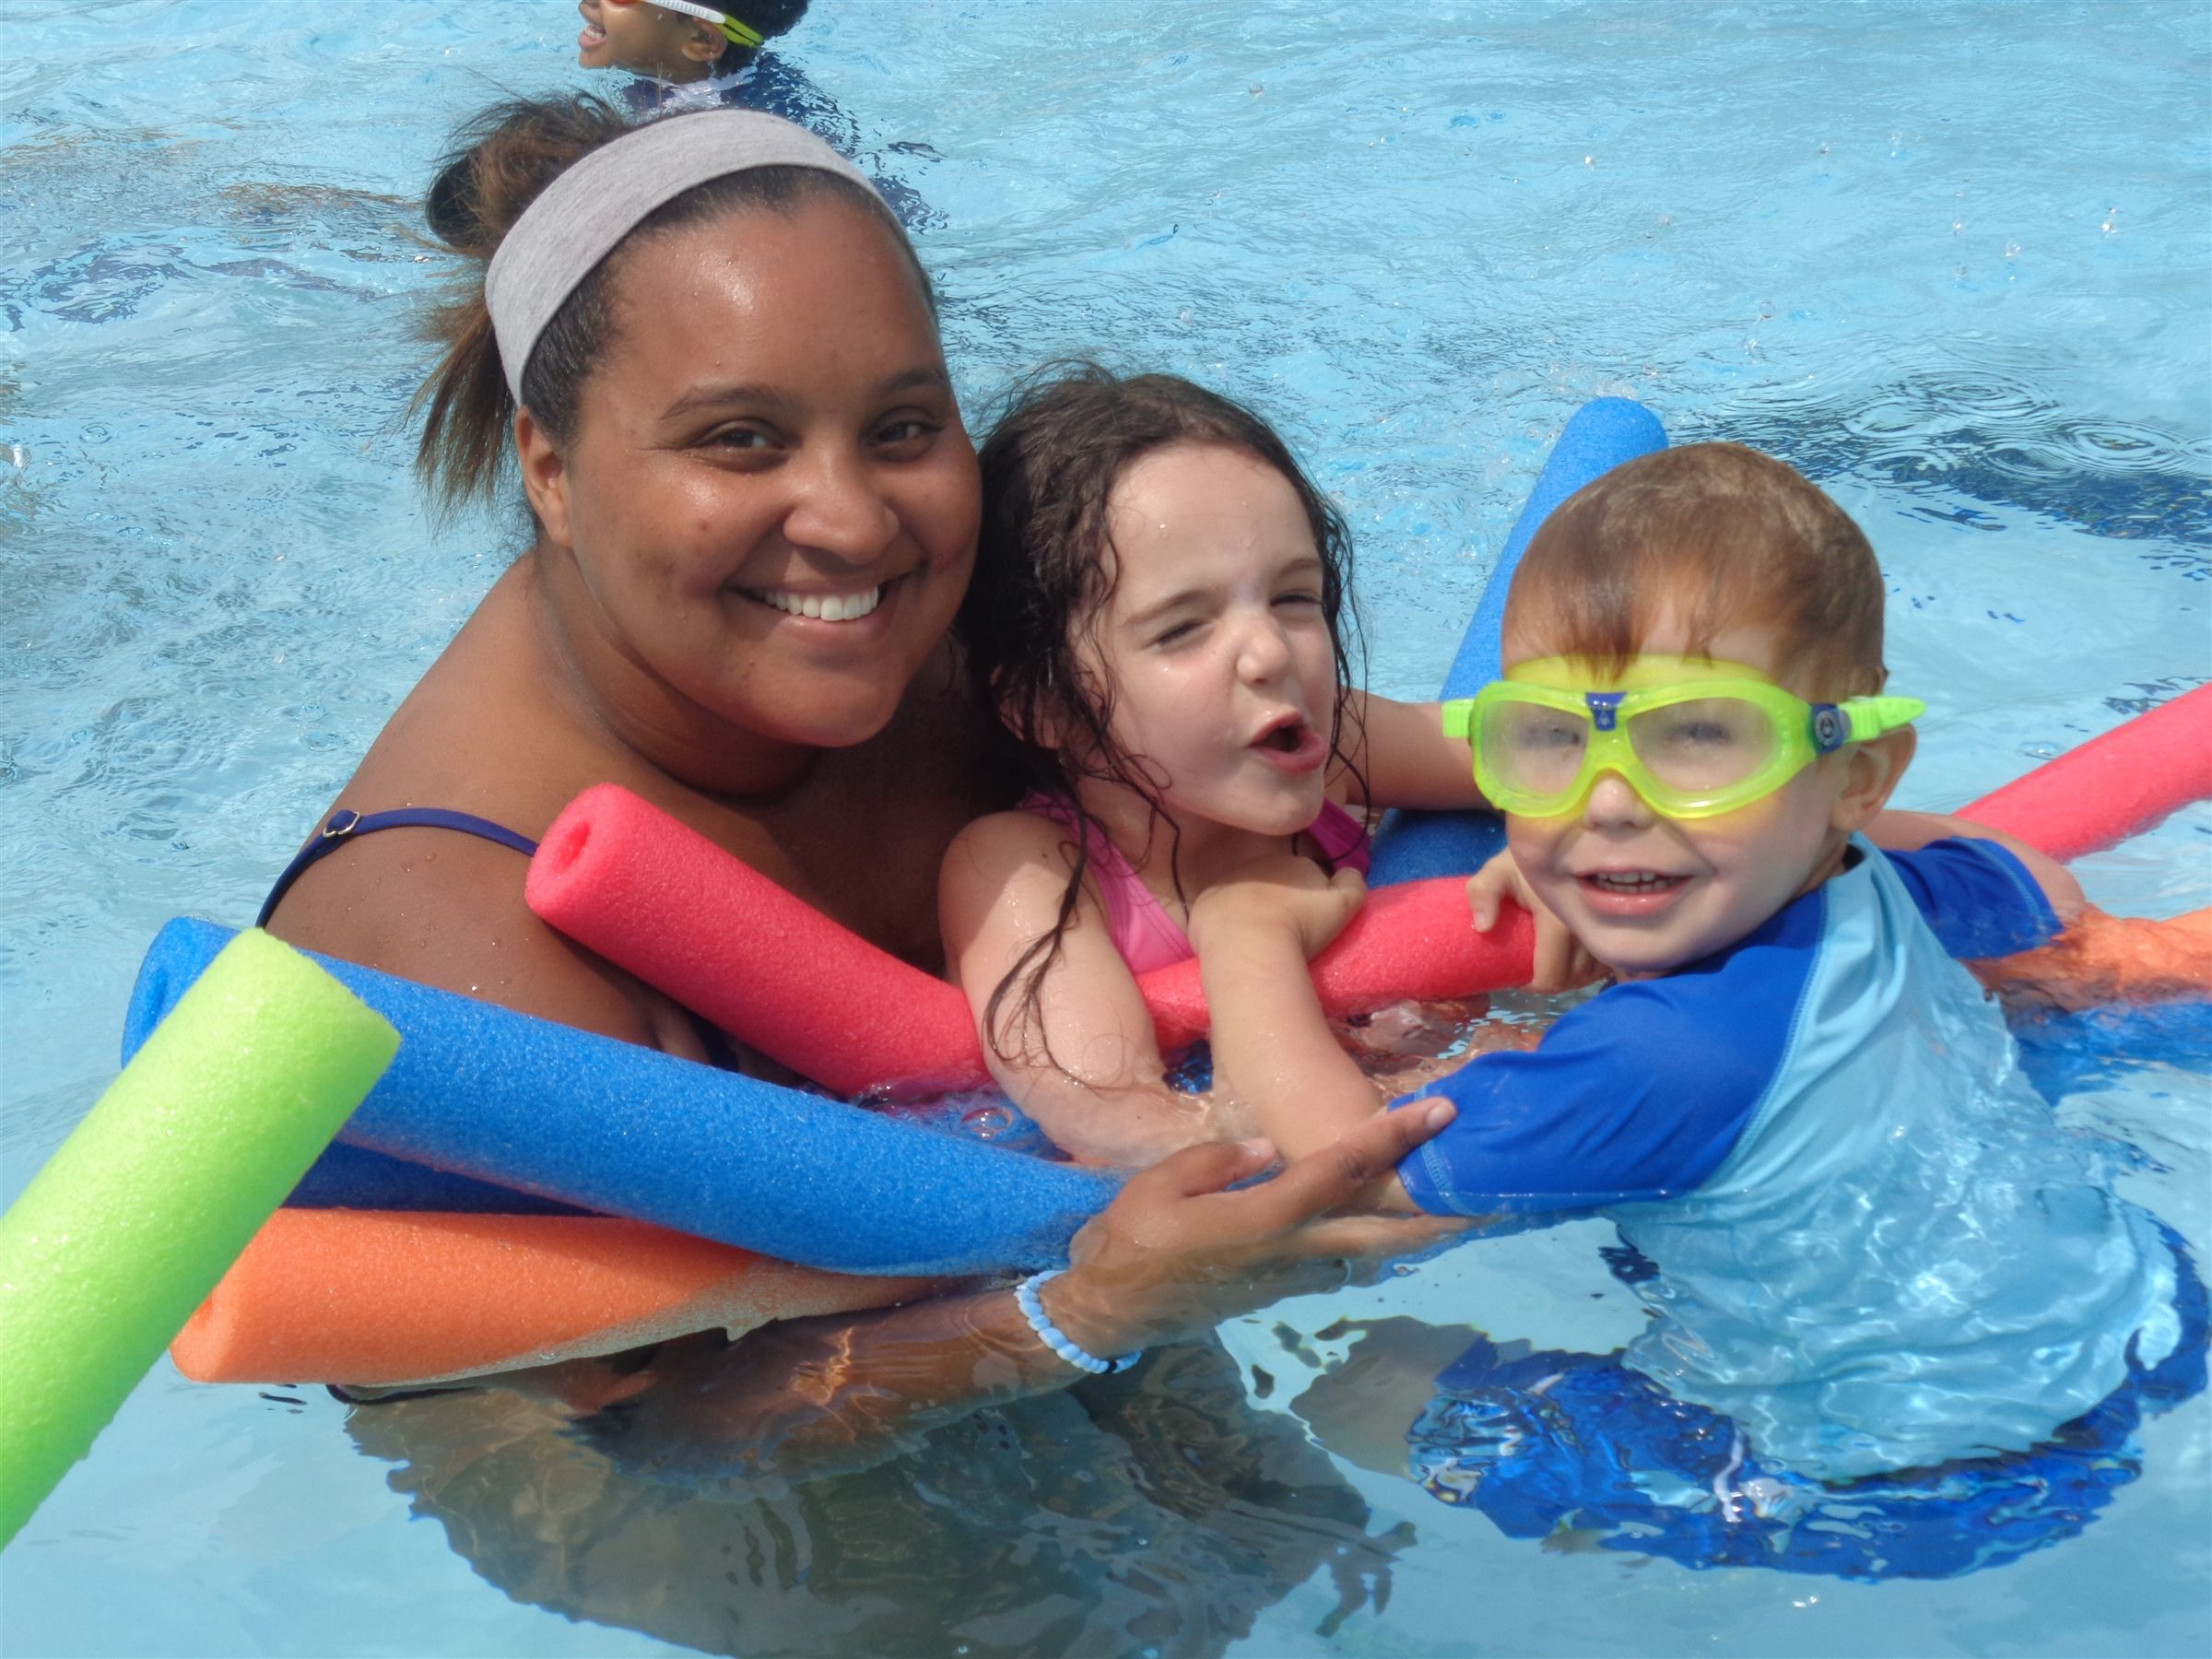 Junior Campers at the Pool with Assistant Director Mikayla